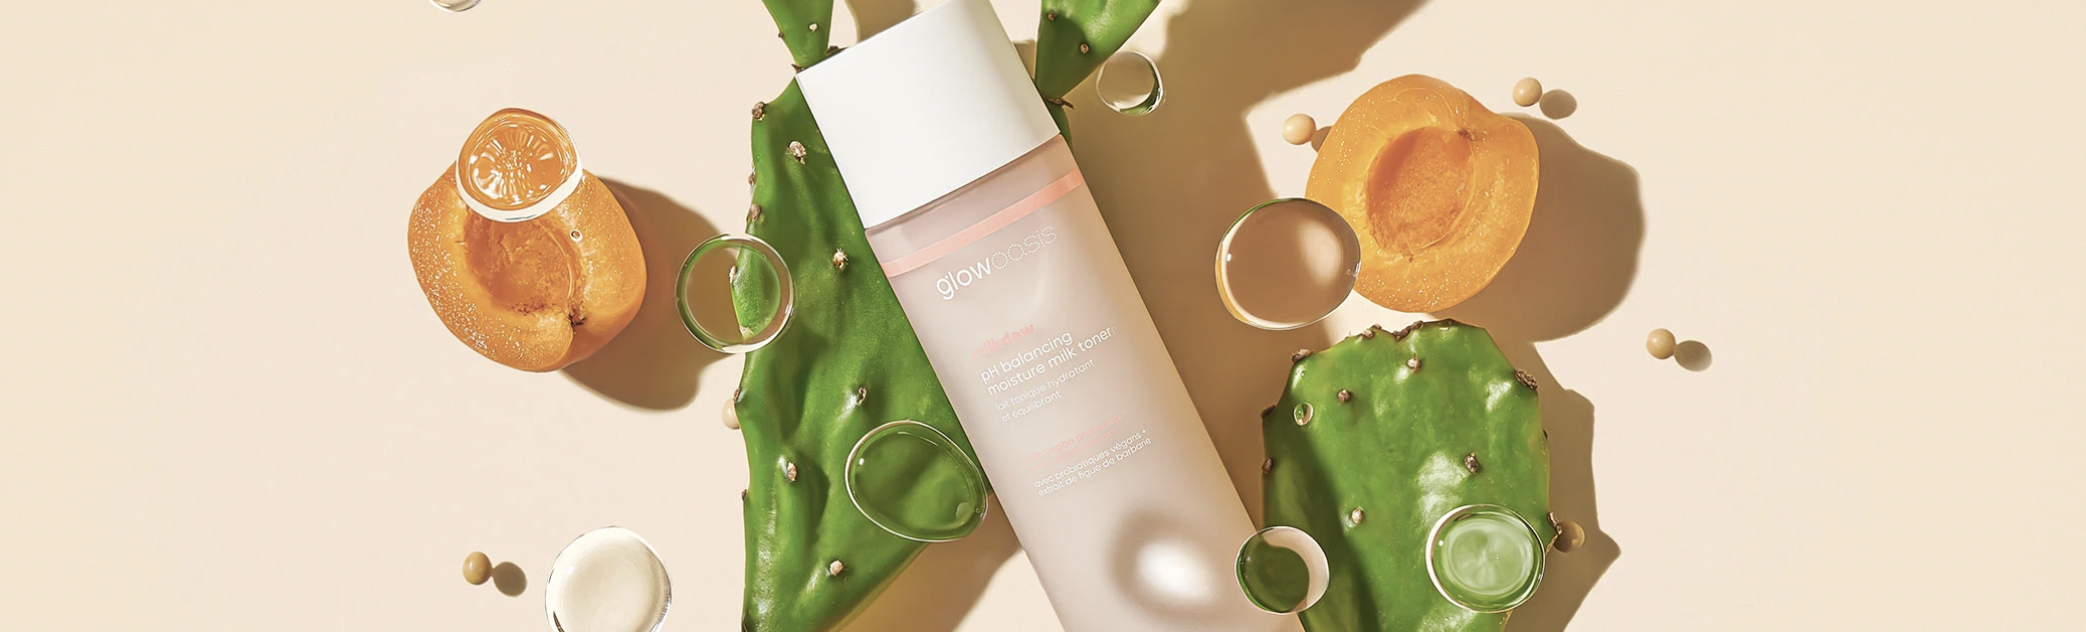 glowoasis face toner is seen with cactus leaves and papaya